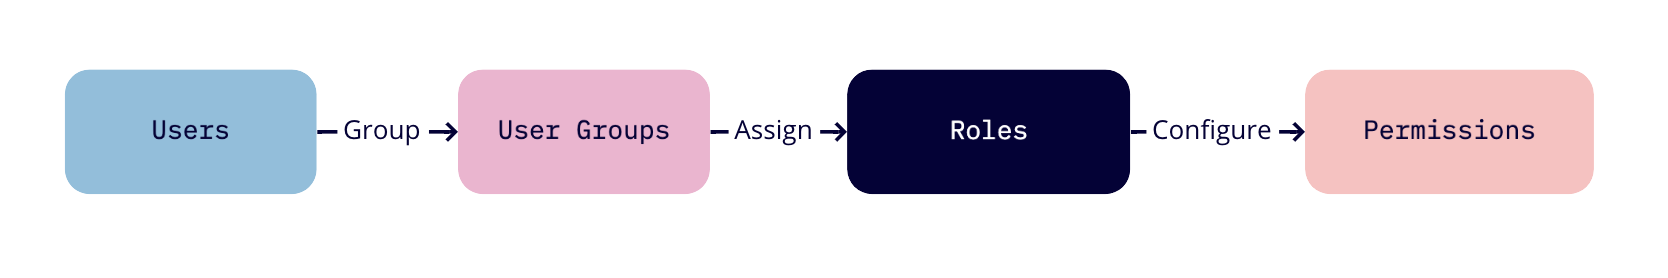 Diagram for RBAC with user groups